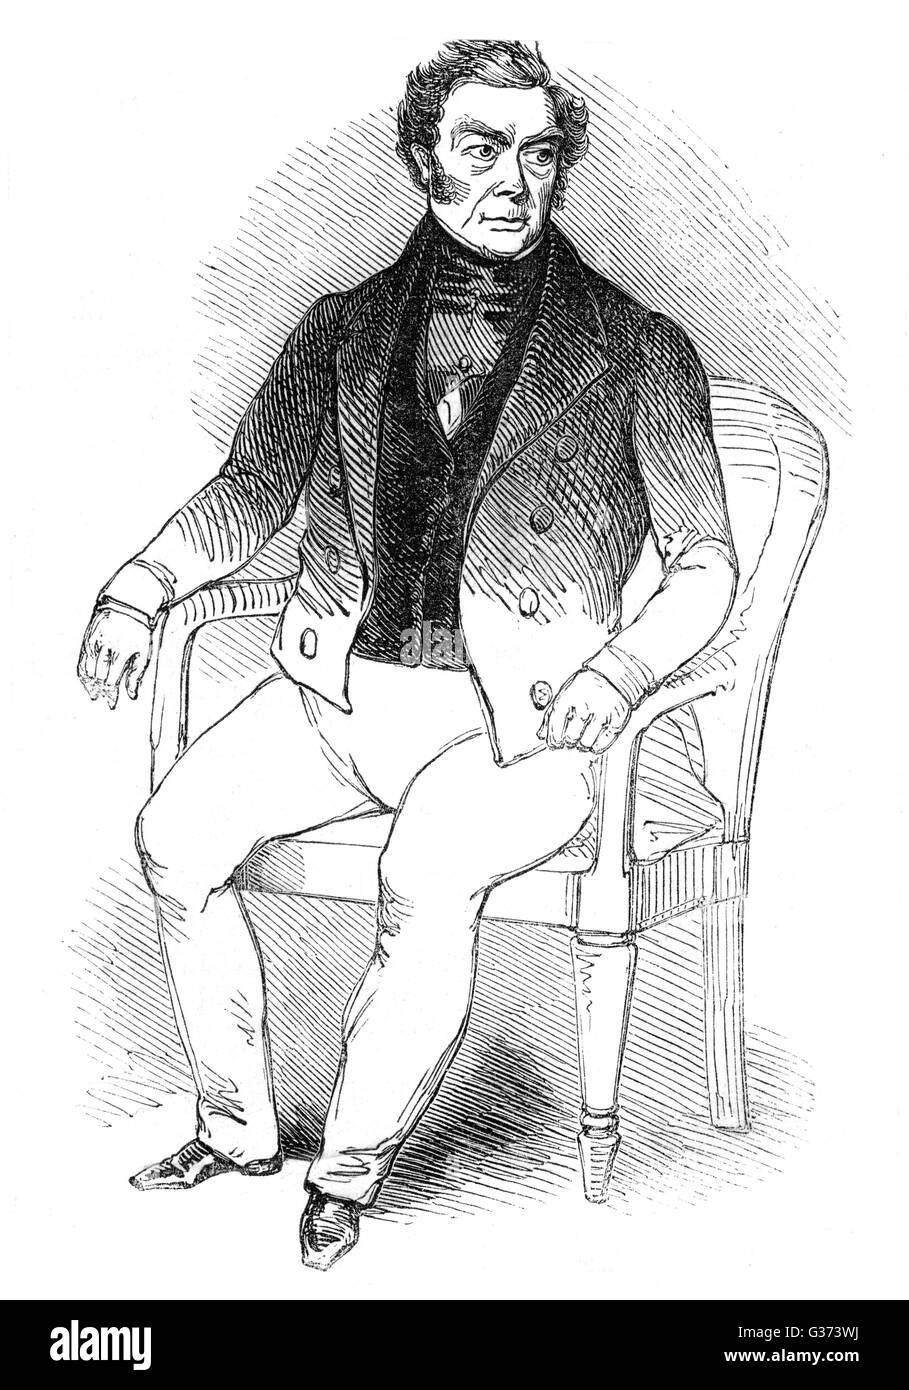 FRANCOIS-EUGENE VIDOCQ French criminal who turned  policeman - but maybe not  completely...       Date: 1775 - 1857 - Stock Image